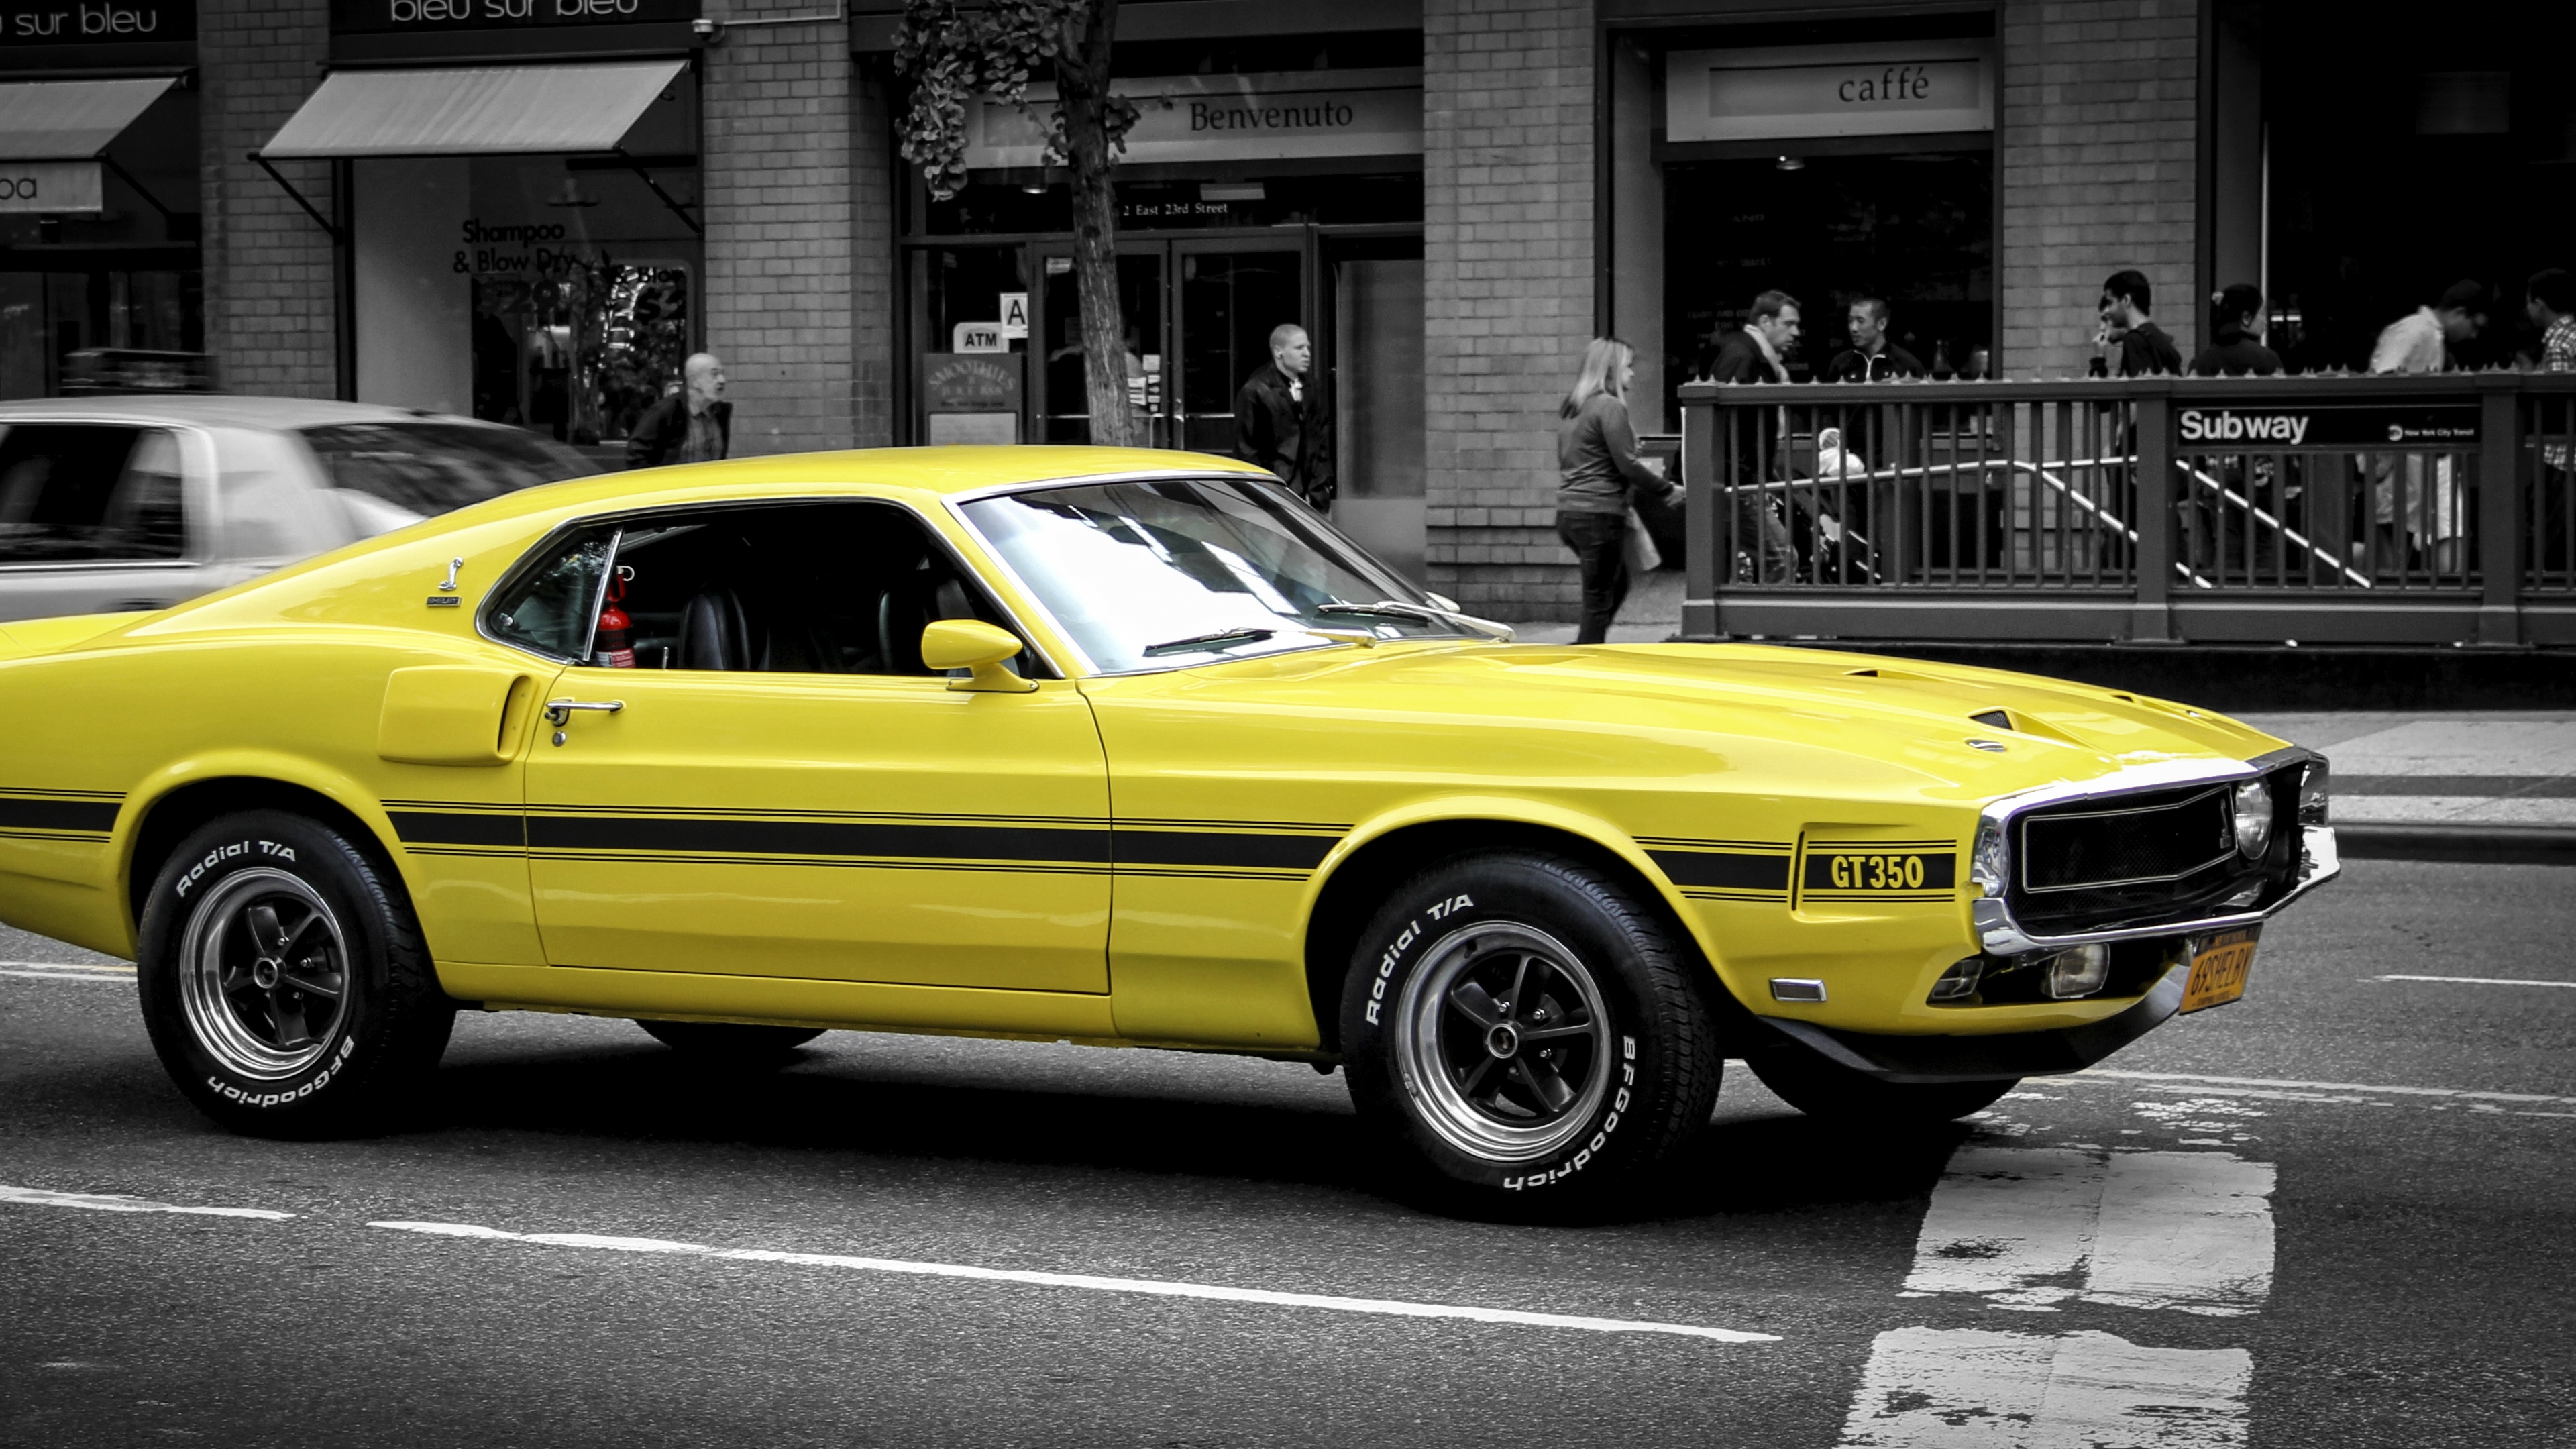 Wallpaper 3840x2160 ford mustang gt muscle car yellow side view 4K 3840x2160